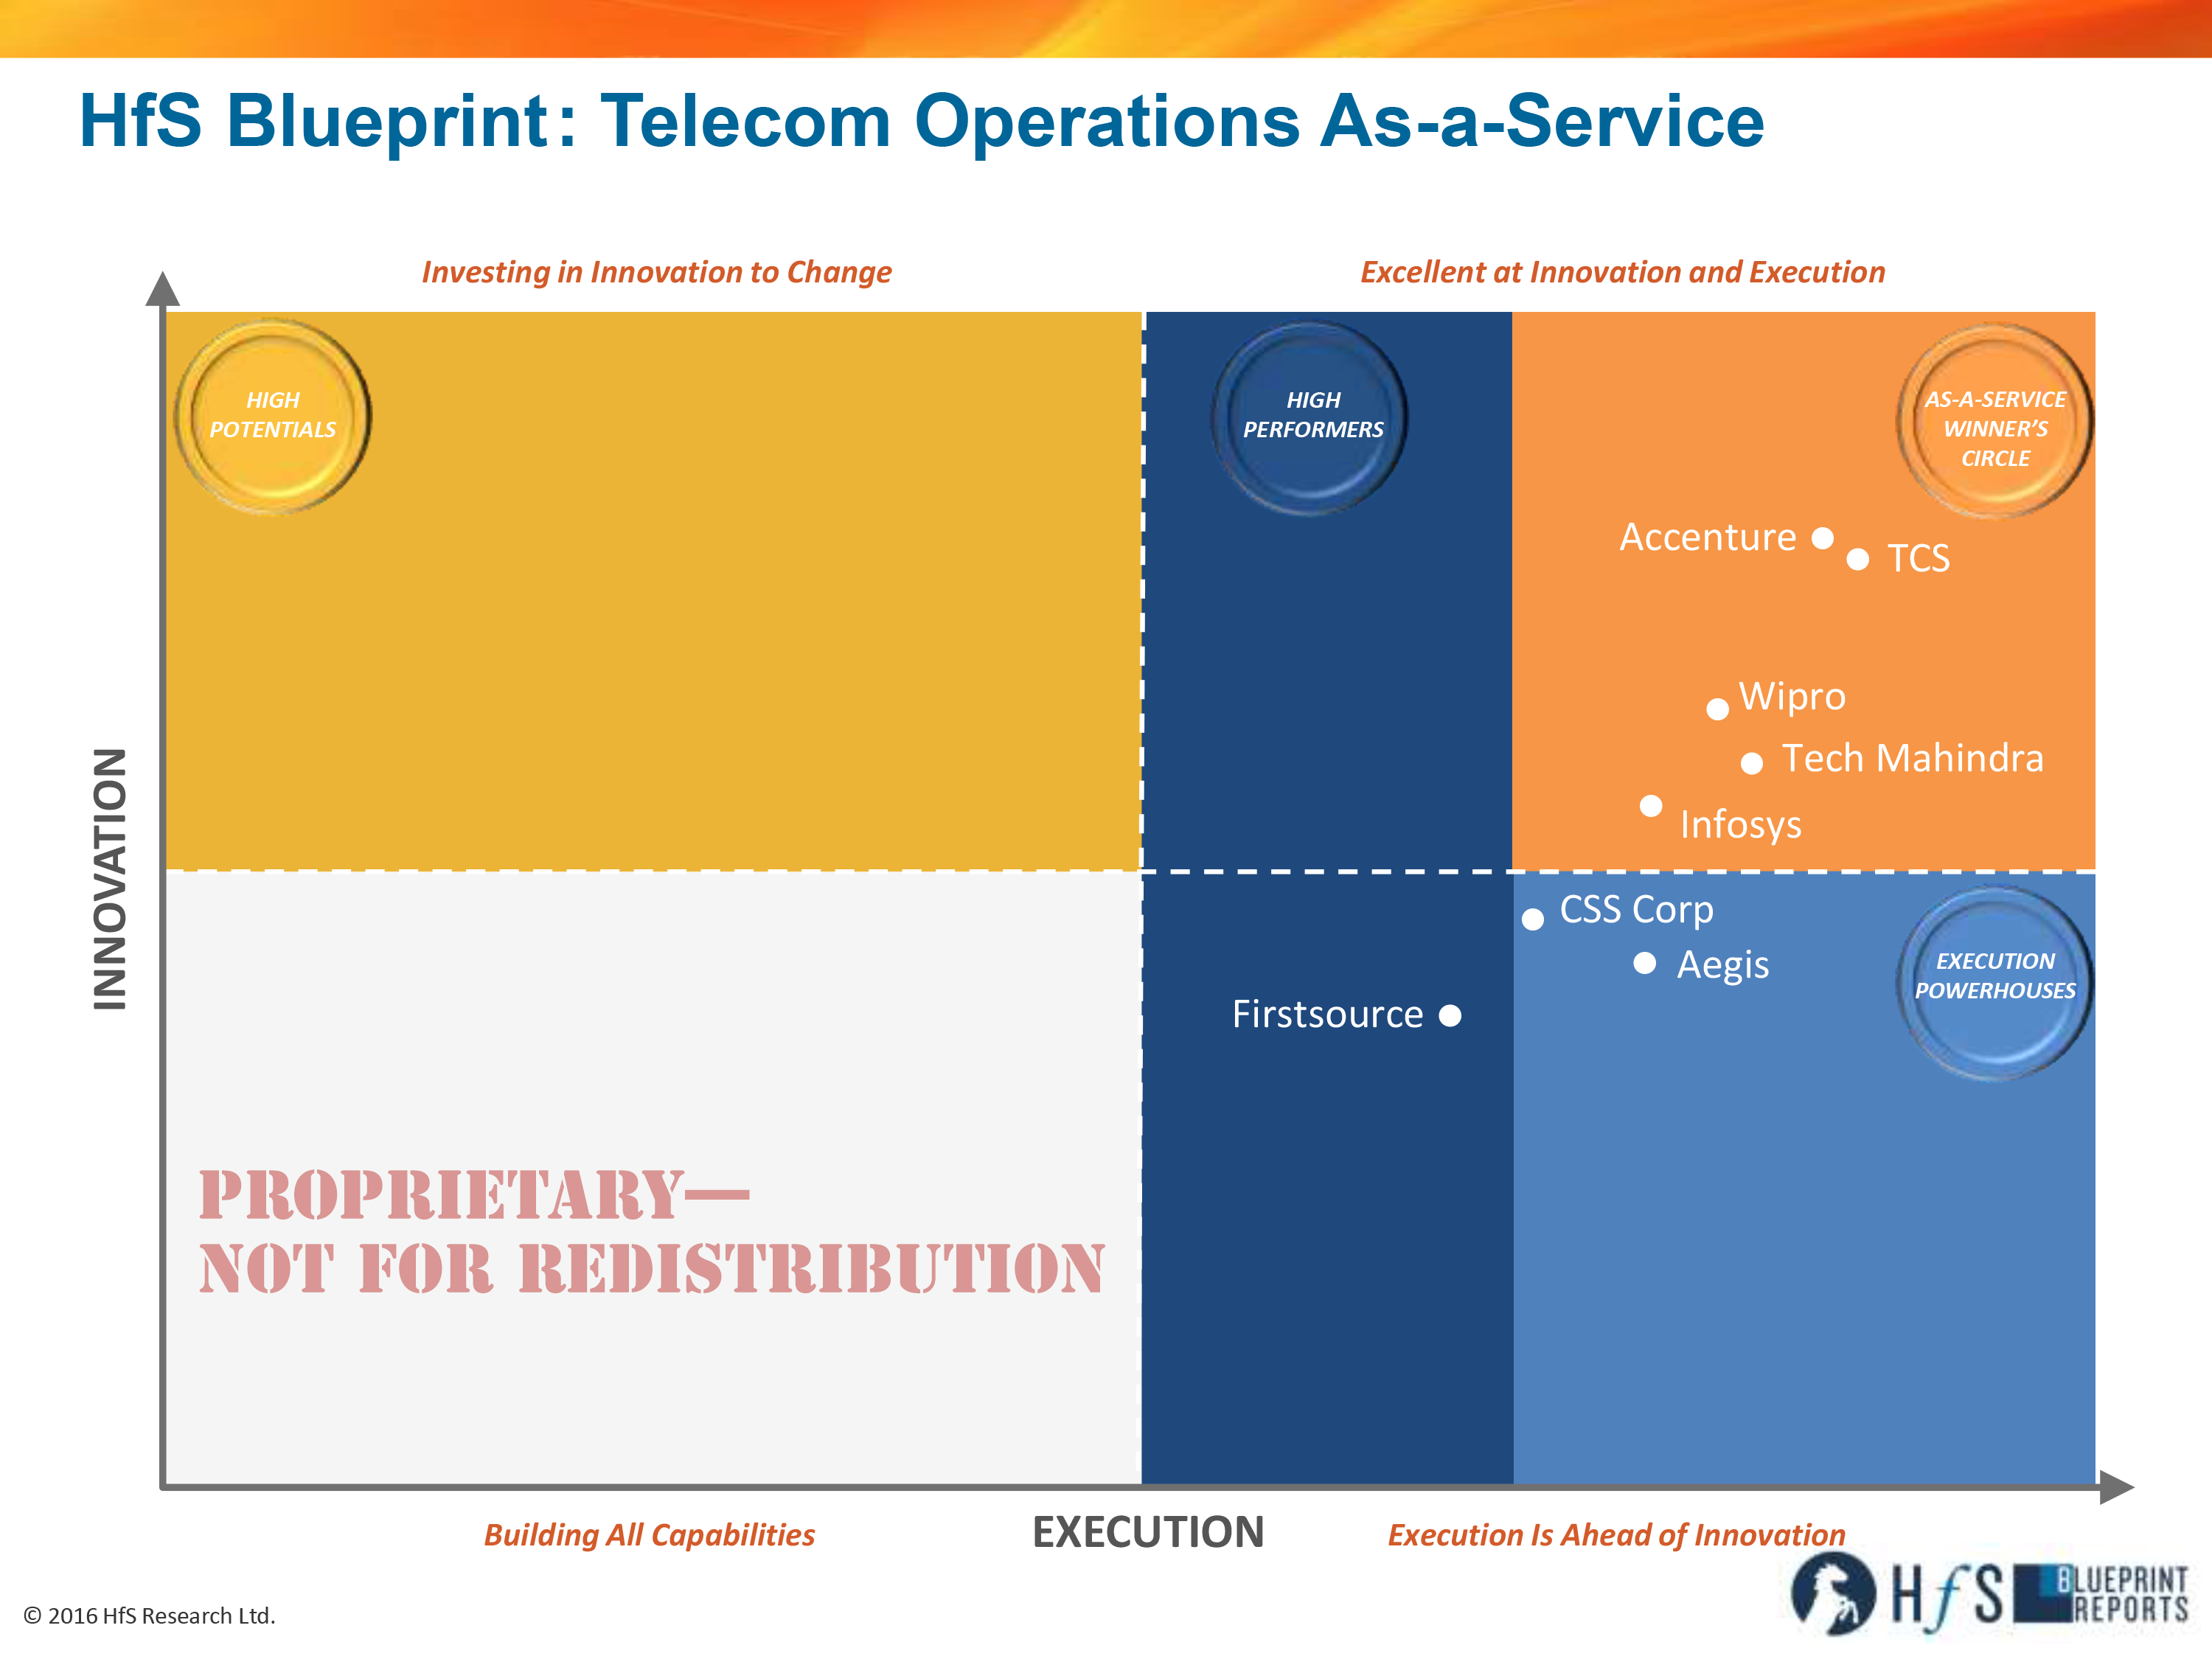 Accenture tcs wipro tech mahindra and infosys lead the 2016 accenture tcs wipro tech mahindra and infosys lead the 2016 telecom operations as a service blueprint horses for sources malvernweather Choice Image